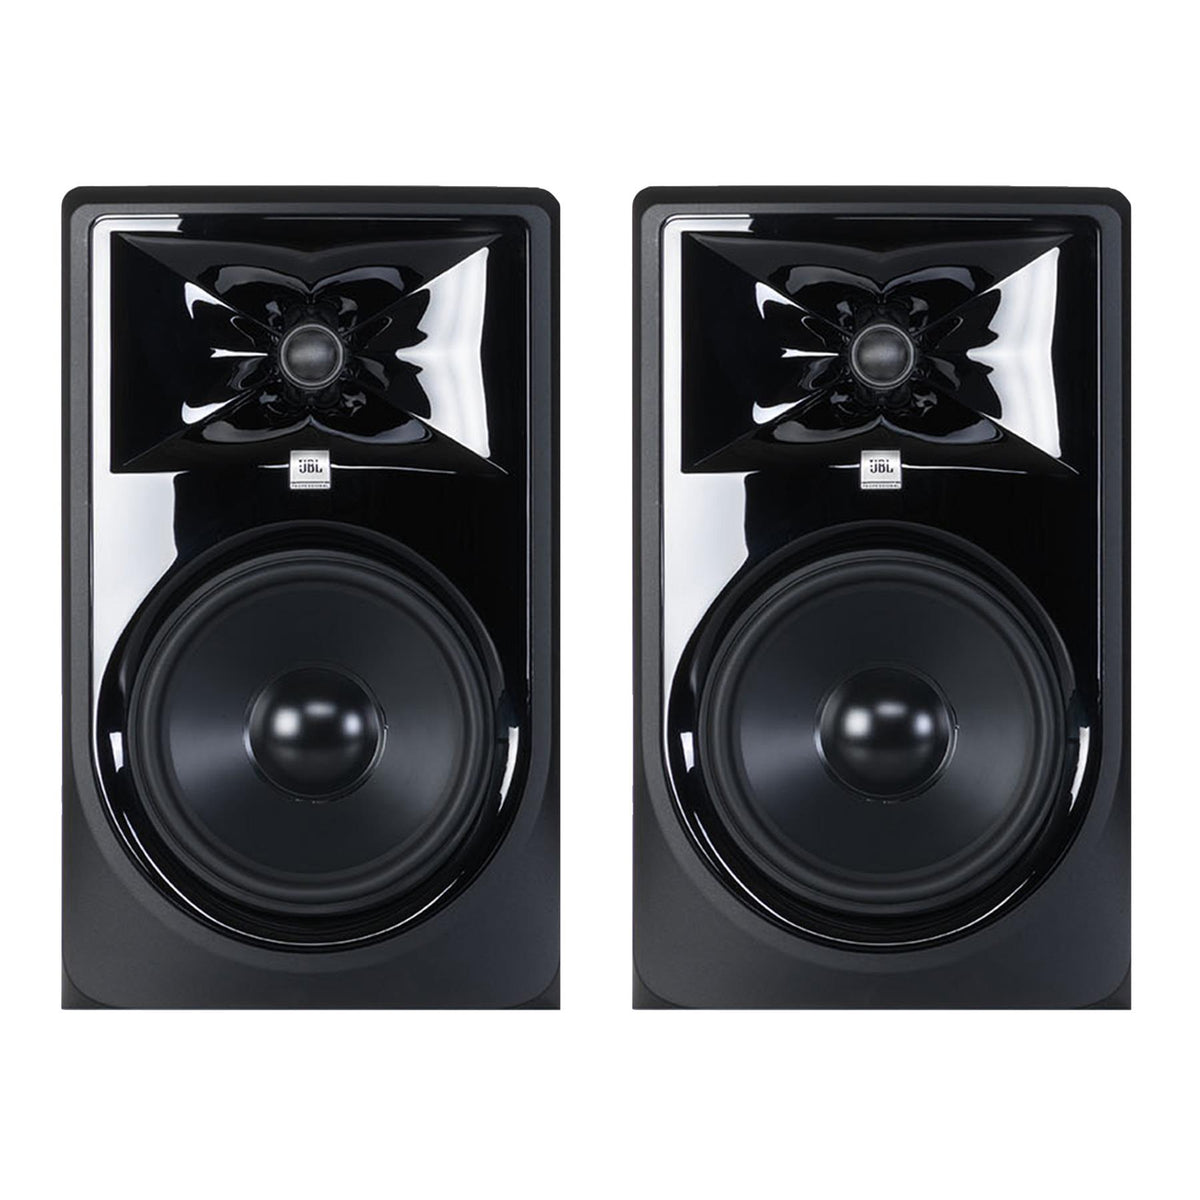 "JBL 308P MKII 8"" Stereo Pair of Powered Studio Monitors Bundle with LSR310S 10"" Subwoofer"